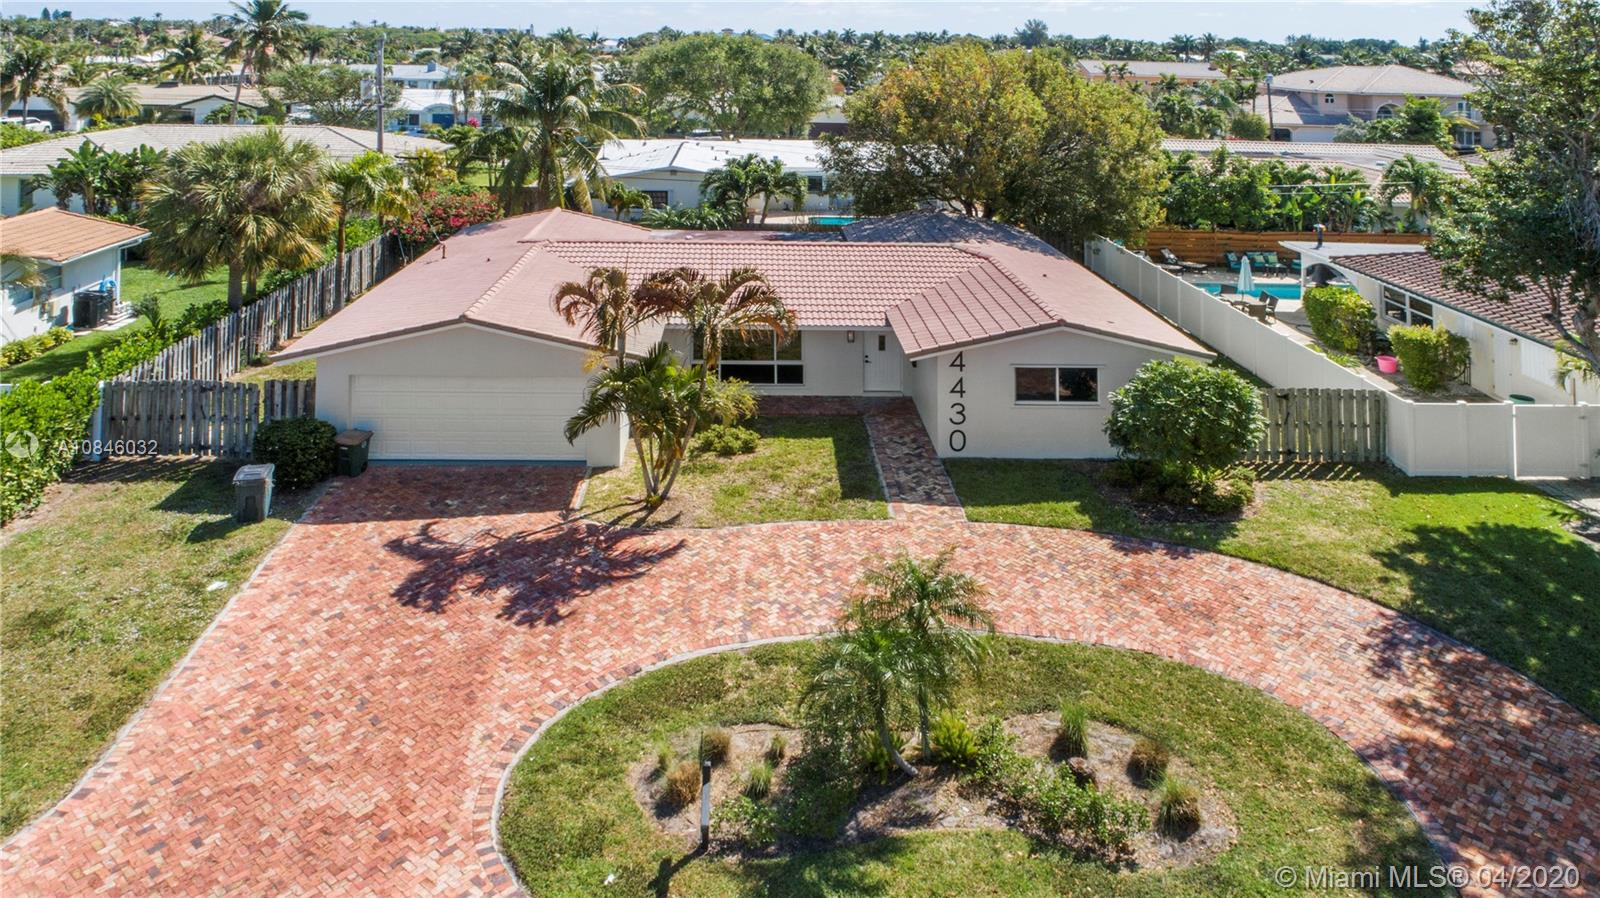 This recently renovated, spacious family home is the exclusive community of Venetian Isles in Lighthouse Point features both modern amenities and character in a fantastic location. No stone was left unturned during the recent remodel, which includes updated porcelain flooring throughout and a brand-new subway tile backsplash, stainless steel appliances , quarts countertop. Enjoy the proximity to the beach, fine dining, A+ schools , the marina and shopping. Don't miss out on this captivating home.